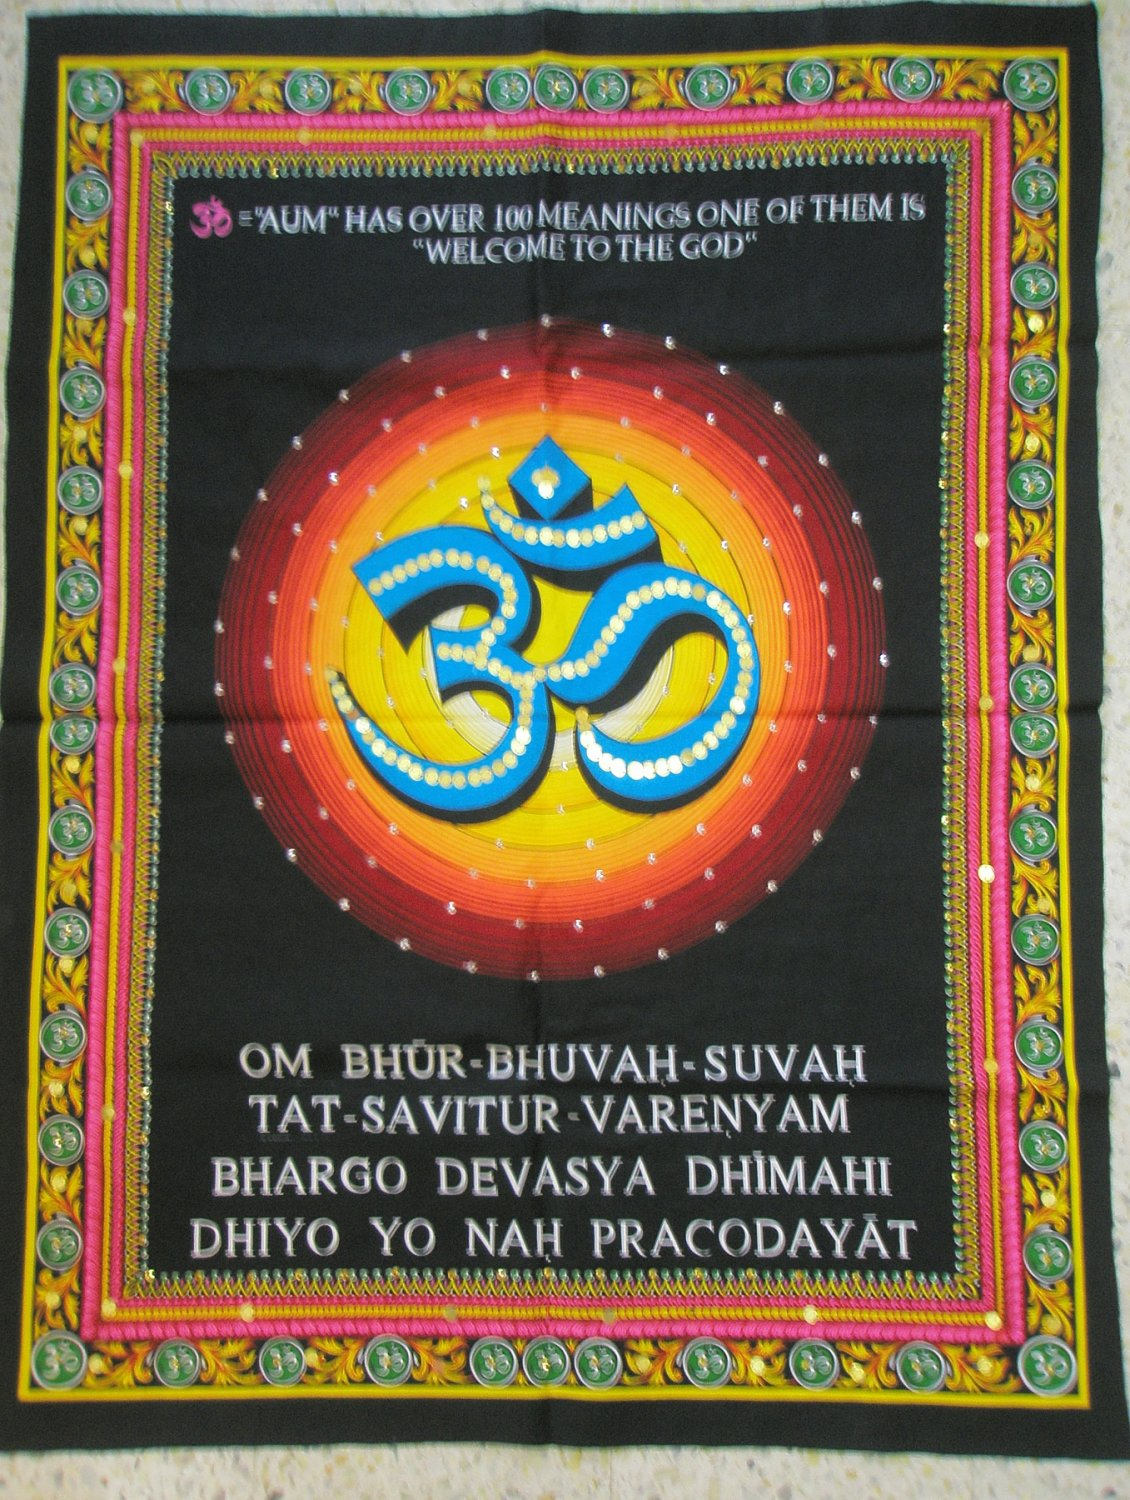 Hindu Symbol OM AUM Ohm Gayatri Mantra Sanskrit Tapestry Sequin Wall Hanging India Vintage Decor